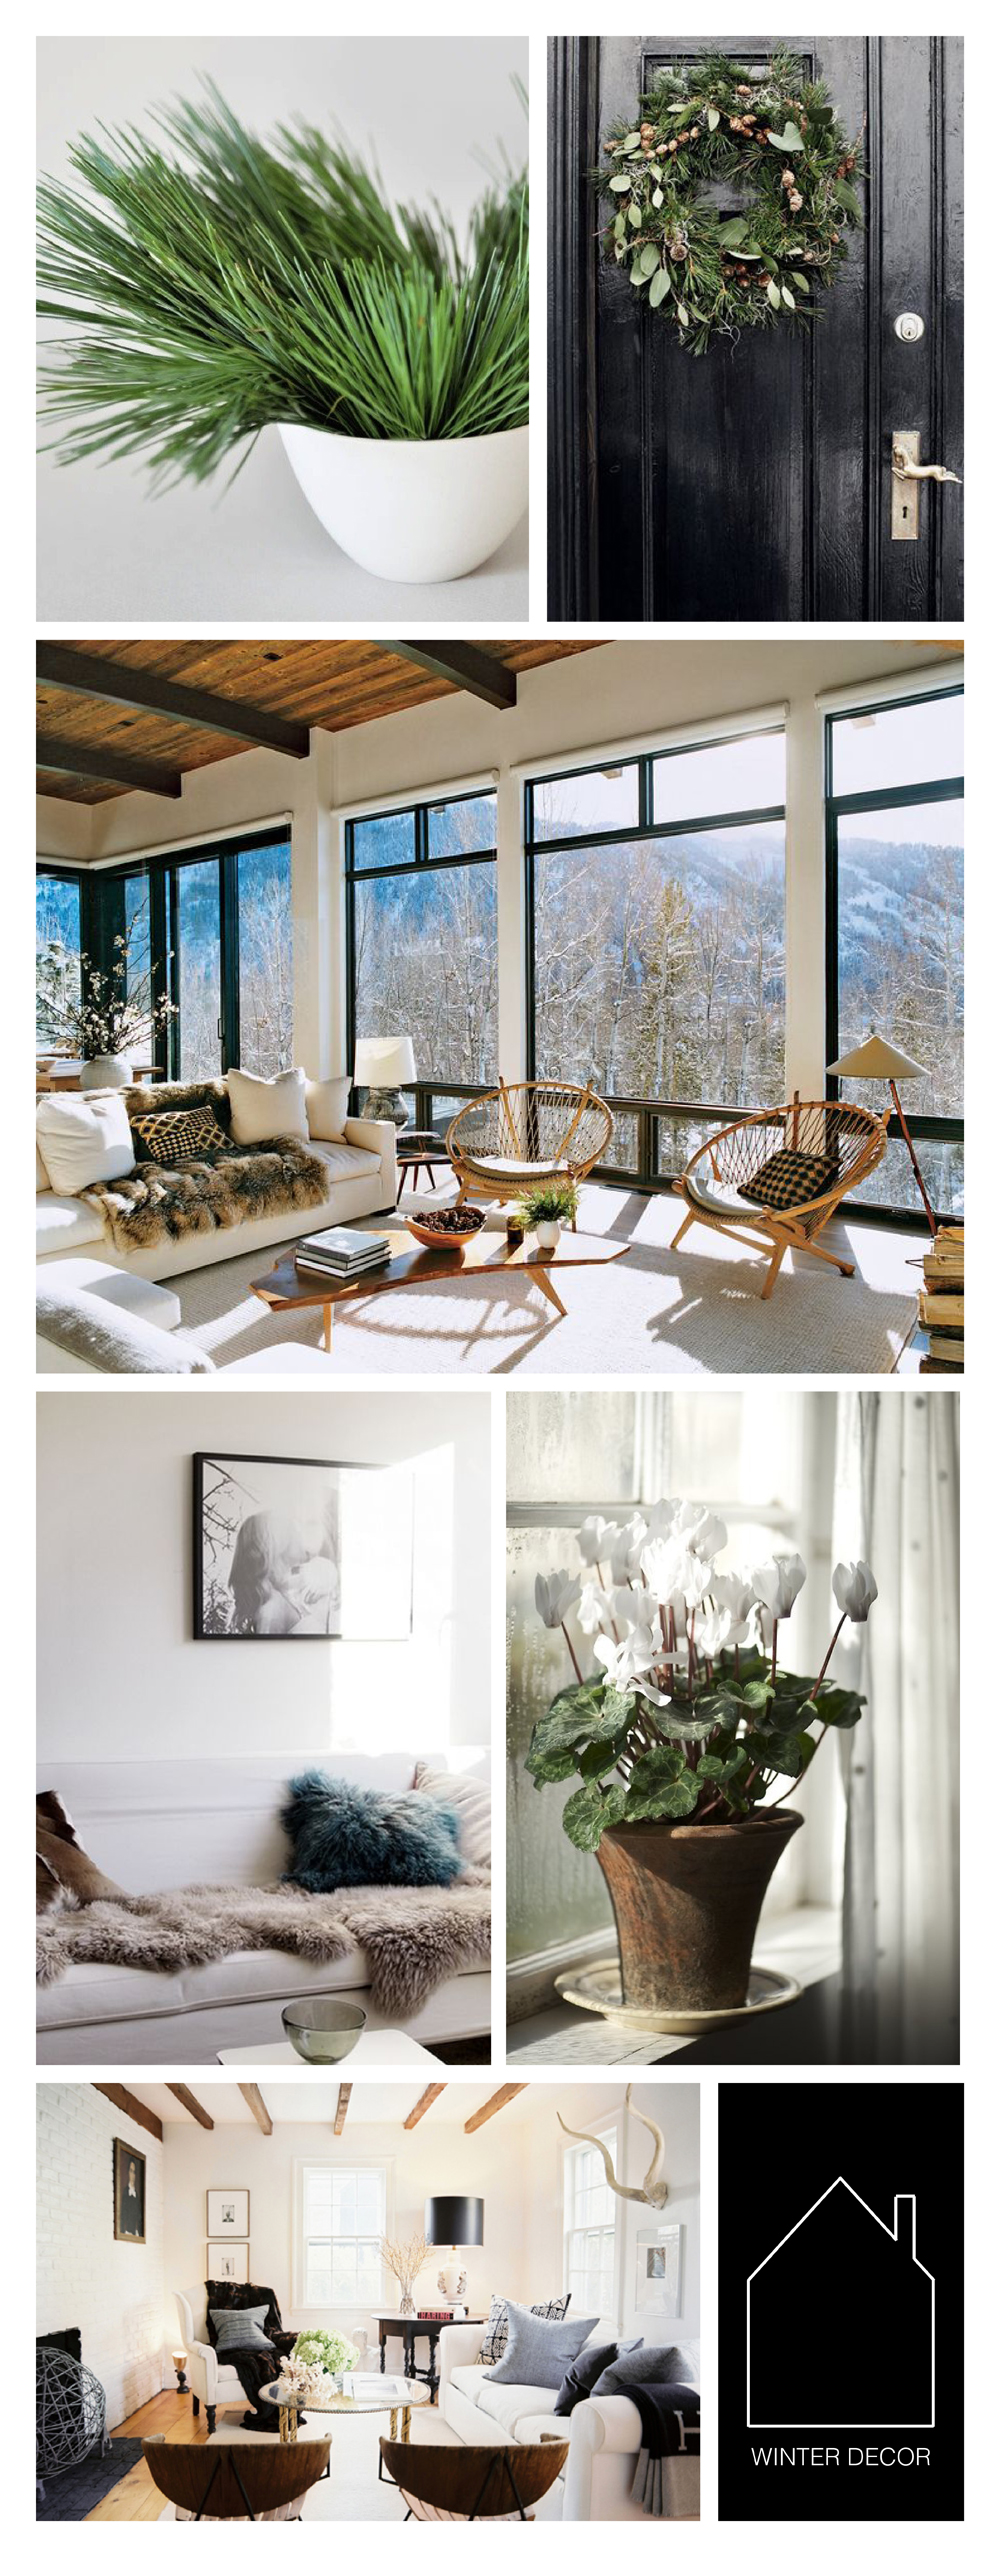 from top left - spruce pot via  Accessorize Your Home  - wreath via  BO BEDRE  - Aspen home of Aerin Lauder via  VOGUE  - sheep skin sofa via  veronica loves archie  - house plant via  The Unexpected Houseplant  - interior via  love maegan